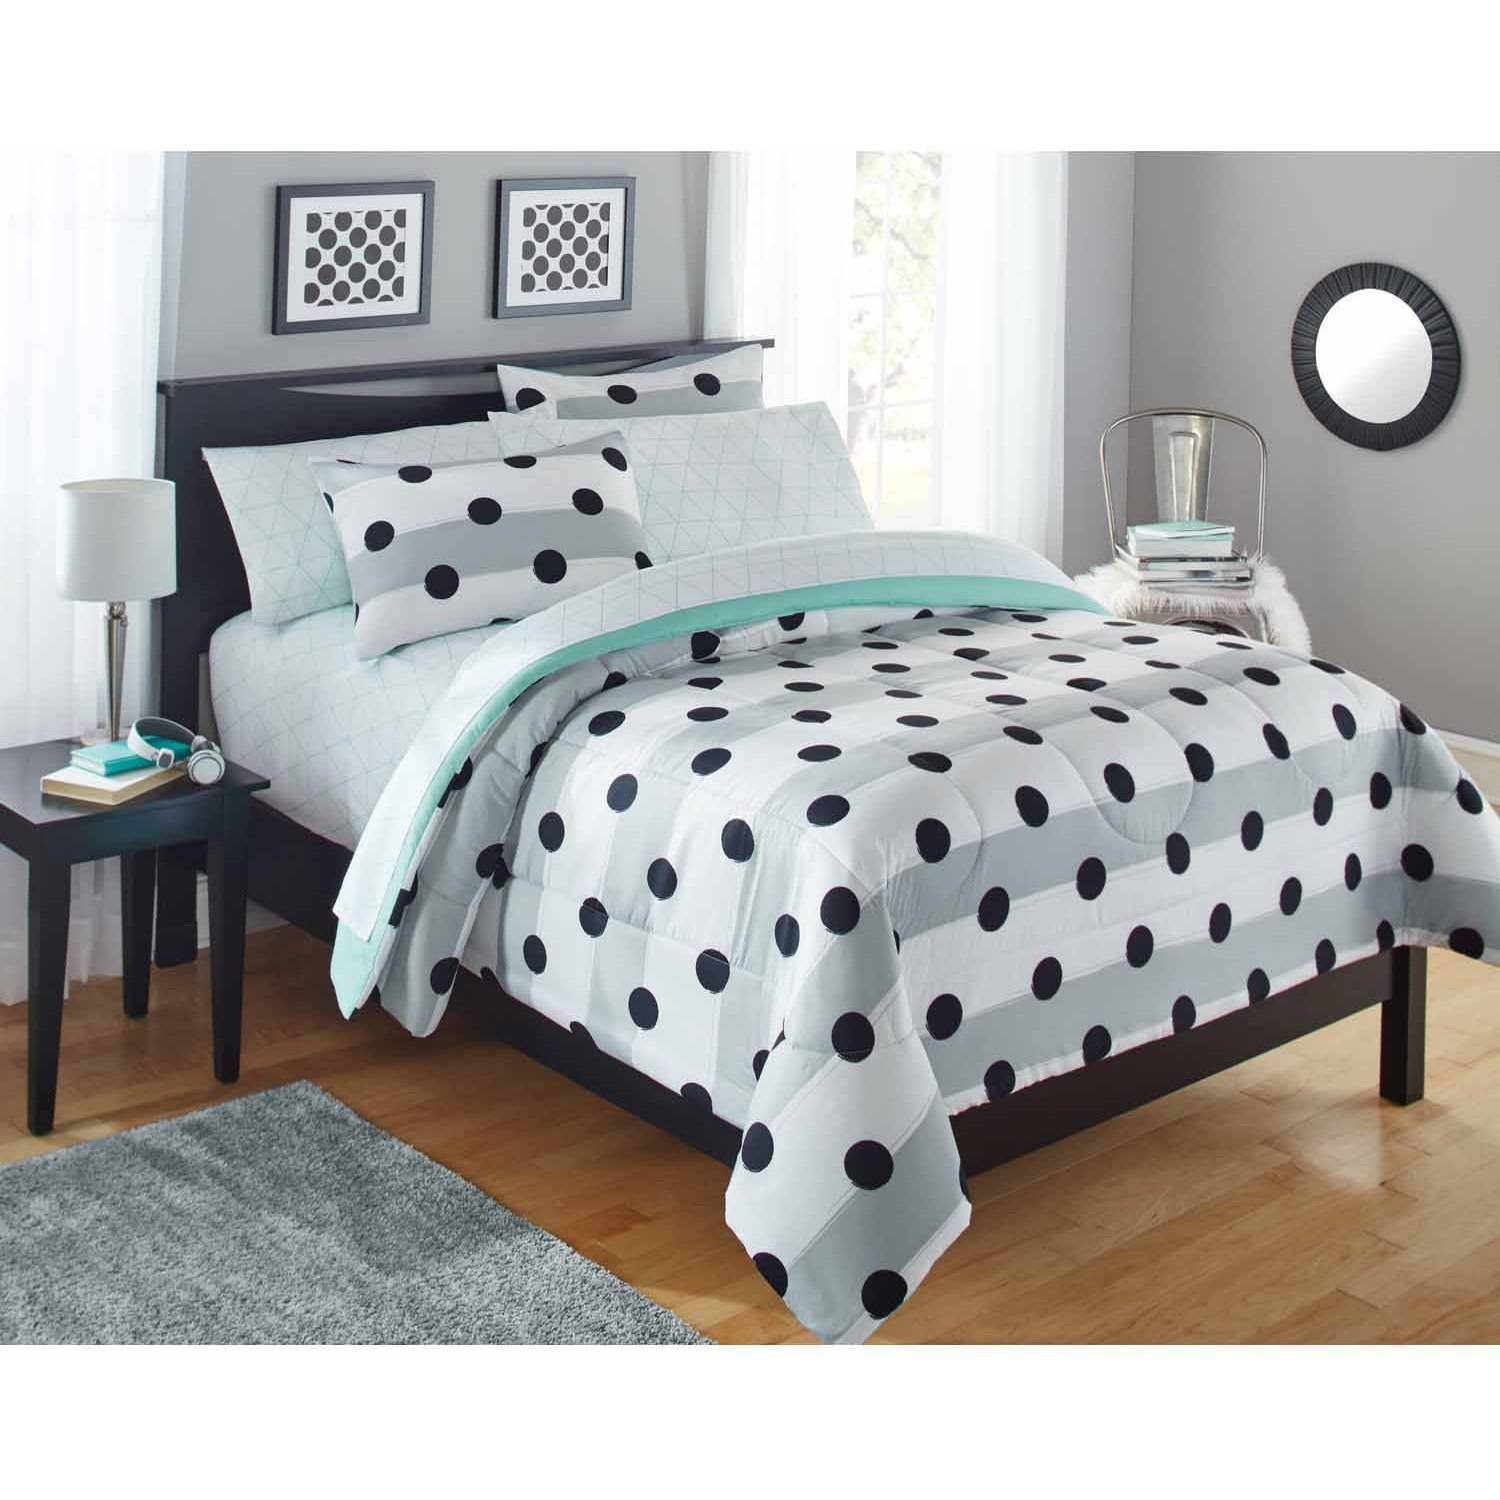 bed stripe mint comforter a dot green bedding ip com in set your bag zone grey walmart